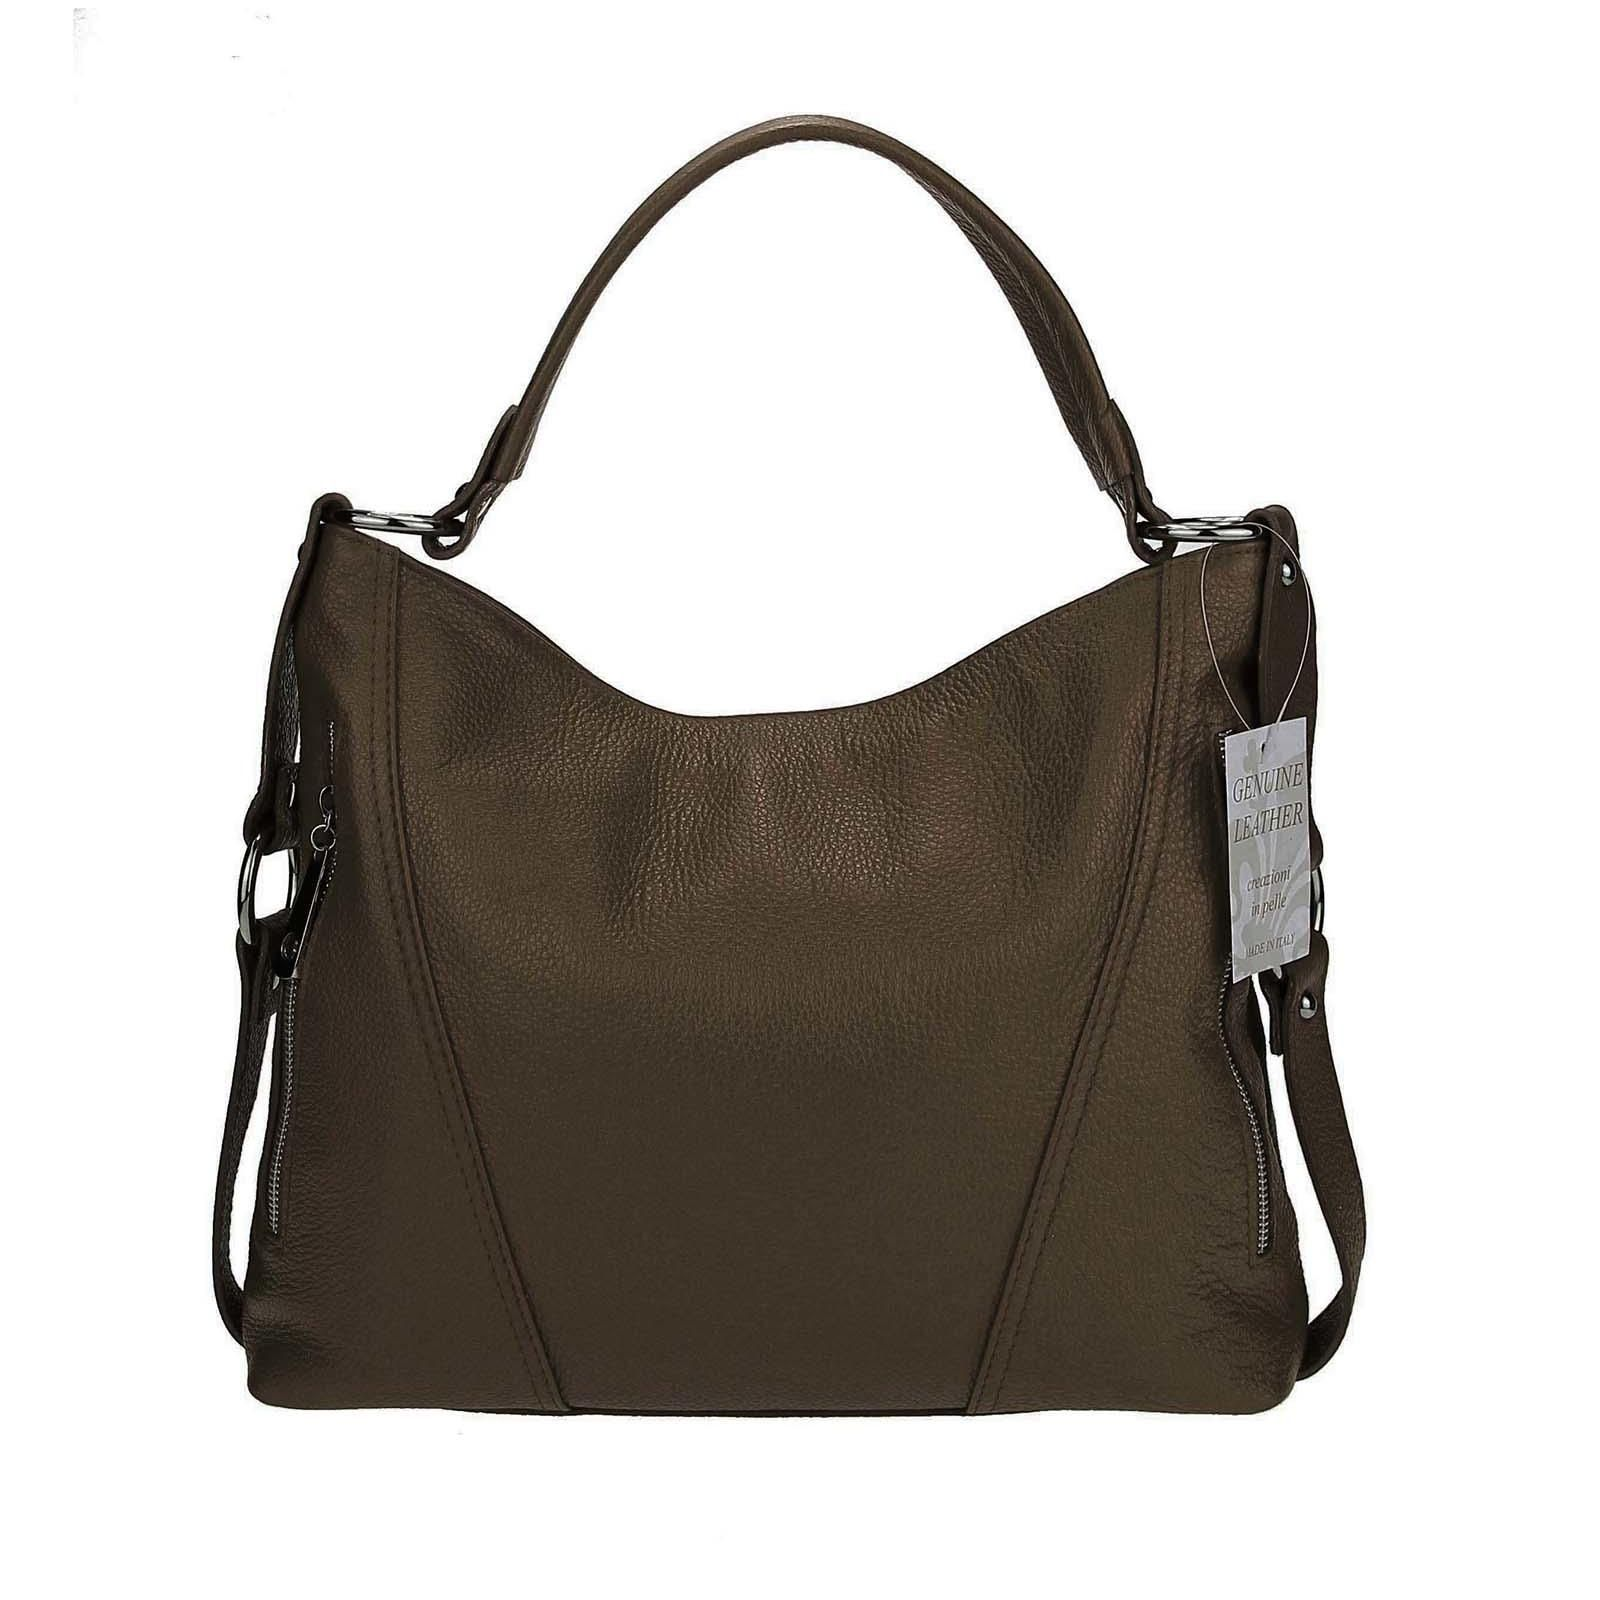 3 Sold In The Last 24 Hours Icymi Made In Italy Genuine Leather Vera Pelle Tote Tote Bag Shoulder Bag Tau Shoulder Bag Outfit Shoulder Bag Diy Shoulder Bag